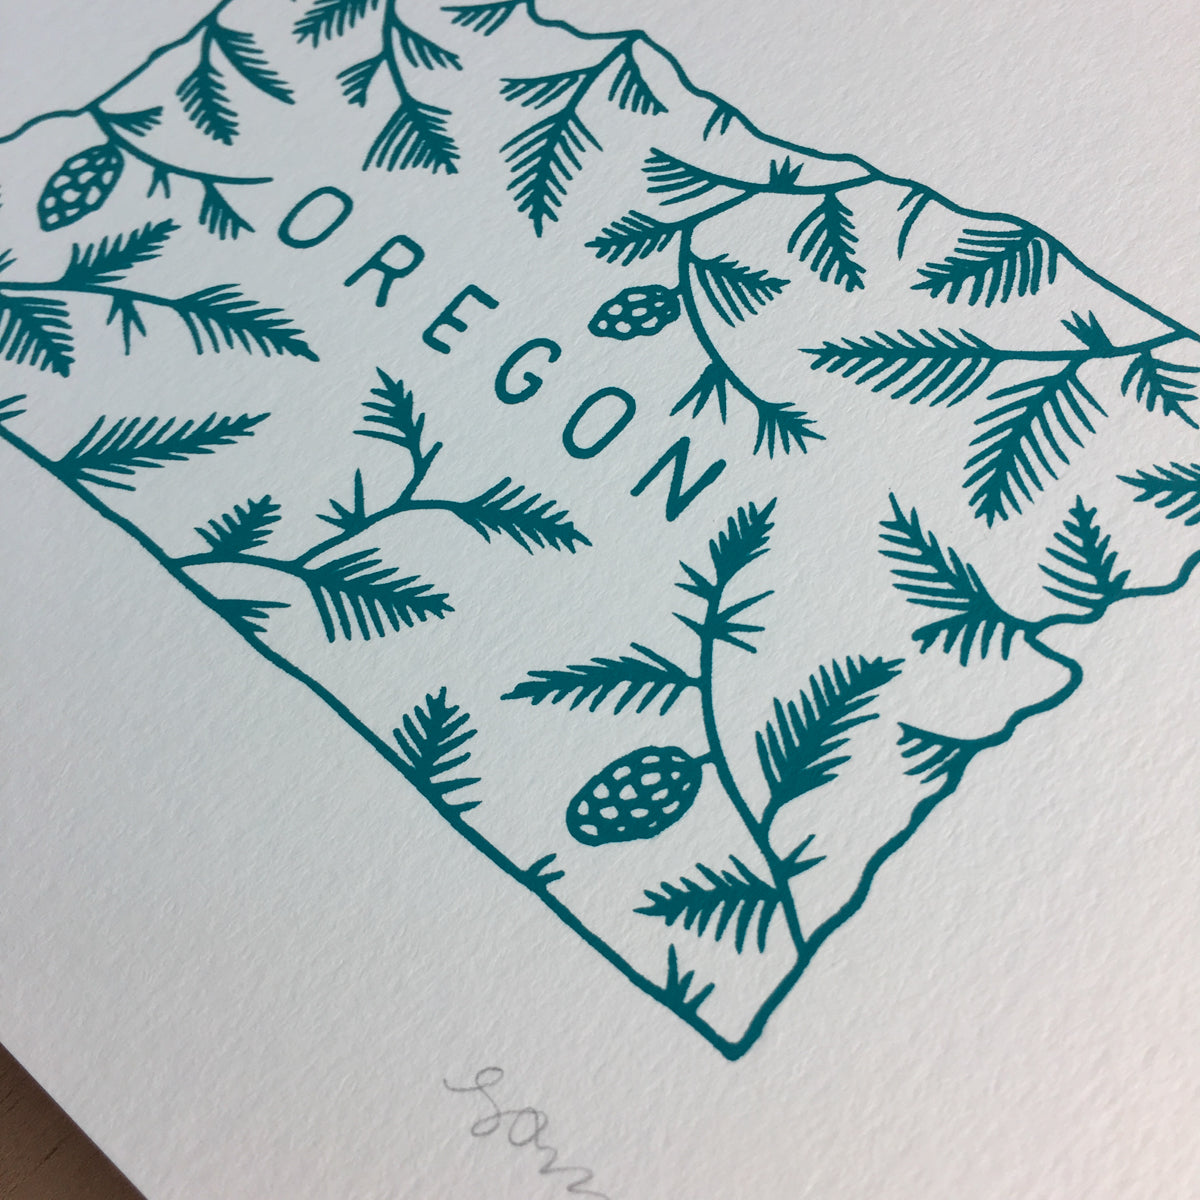 Oregon Pine - Signed Print #150